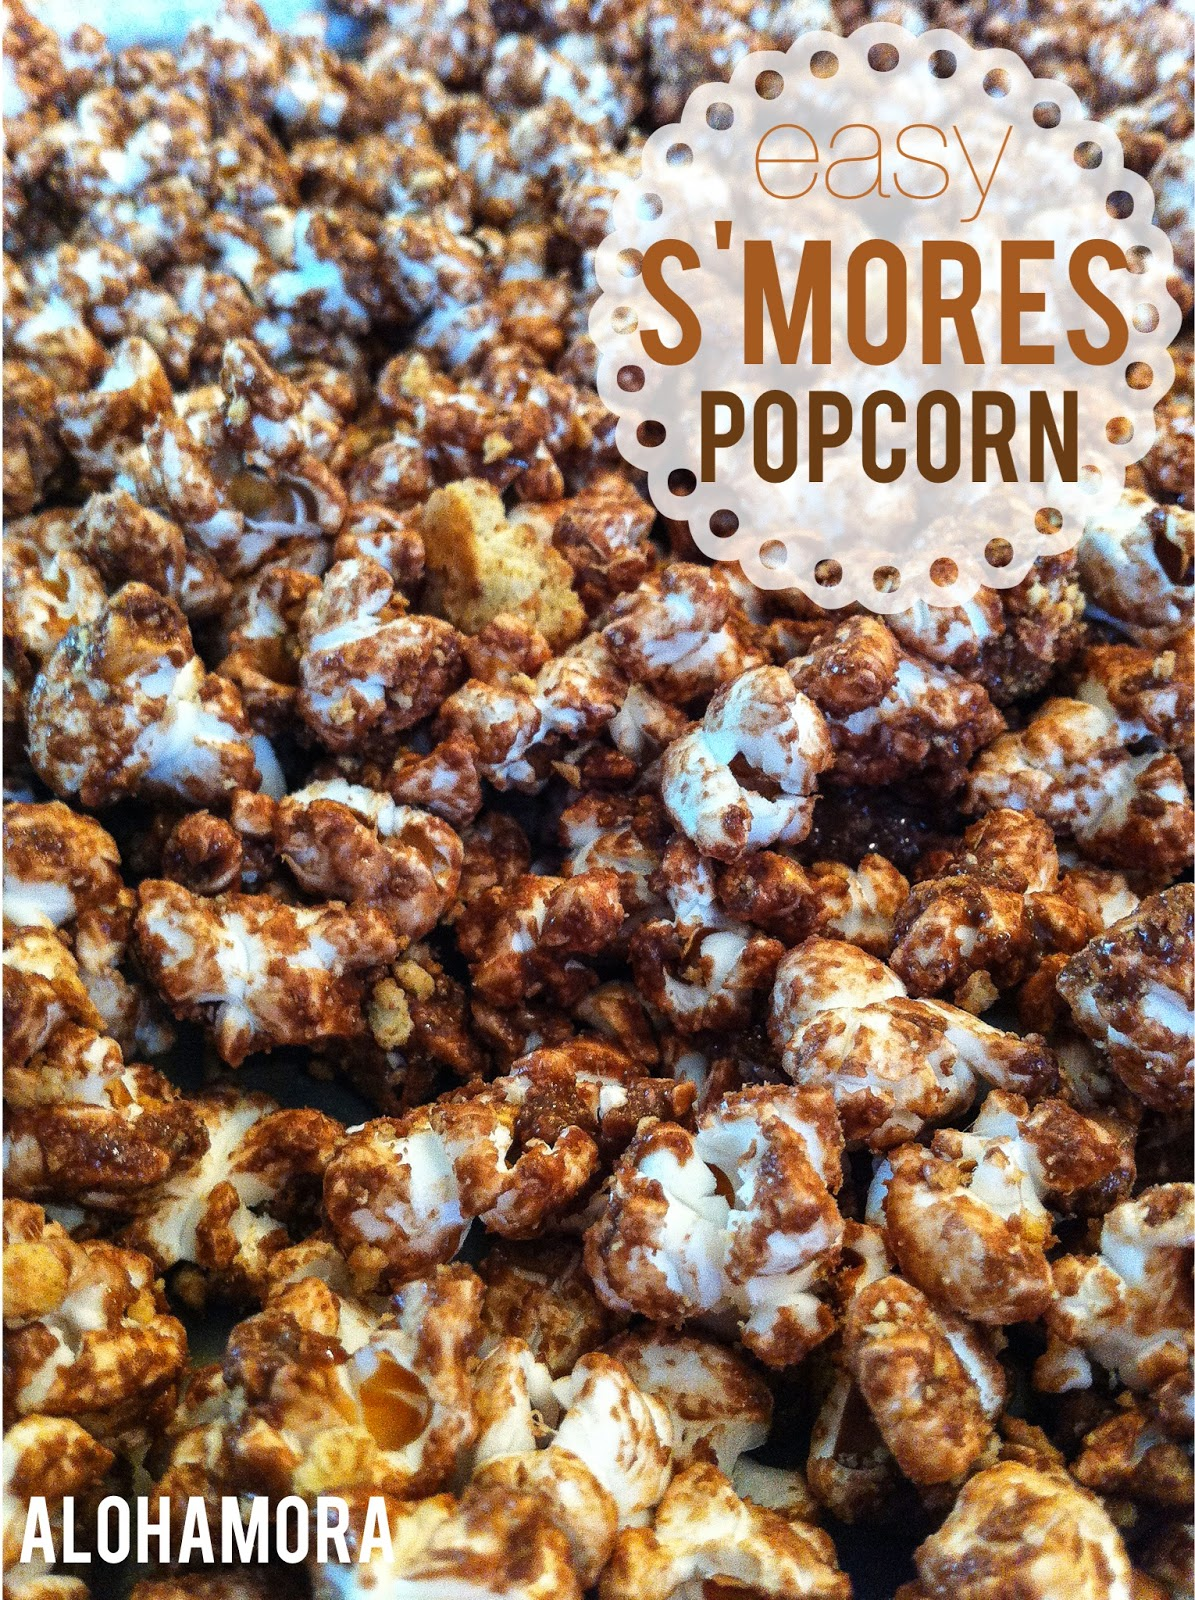 Easy S'mores Popcorn that tastes like a s'more without the mess. Perfect snack for a party or a movie.  Alohamora: Open a Book http://alohamoraopenabook.blogspot.com/